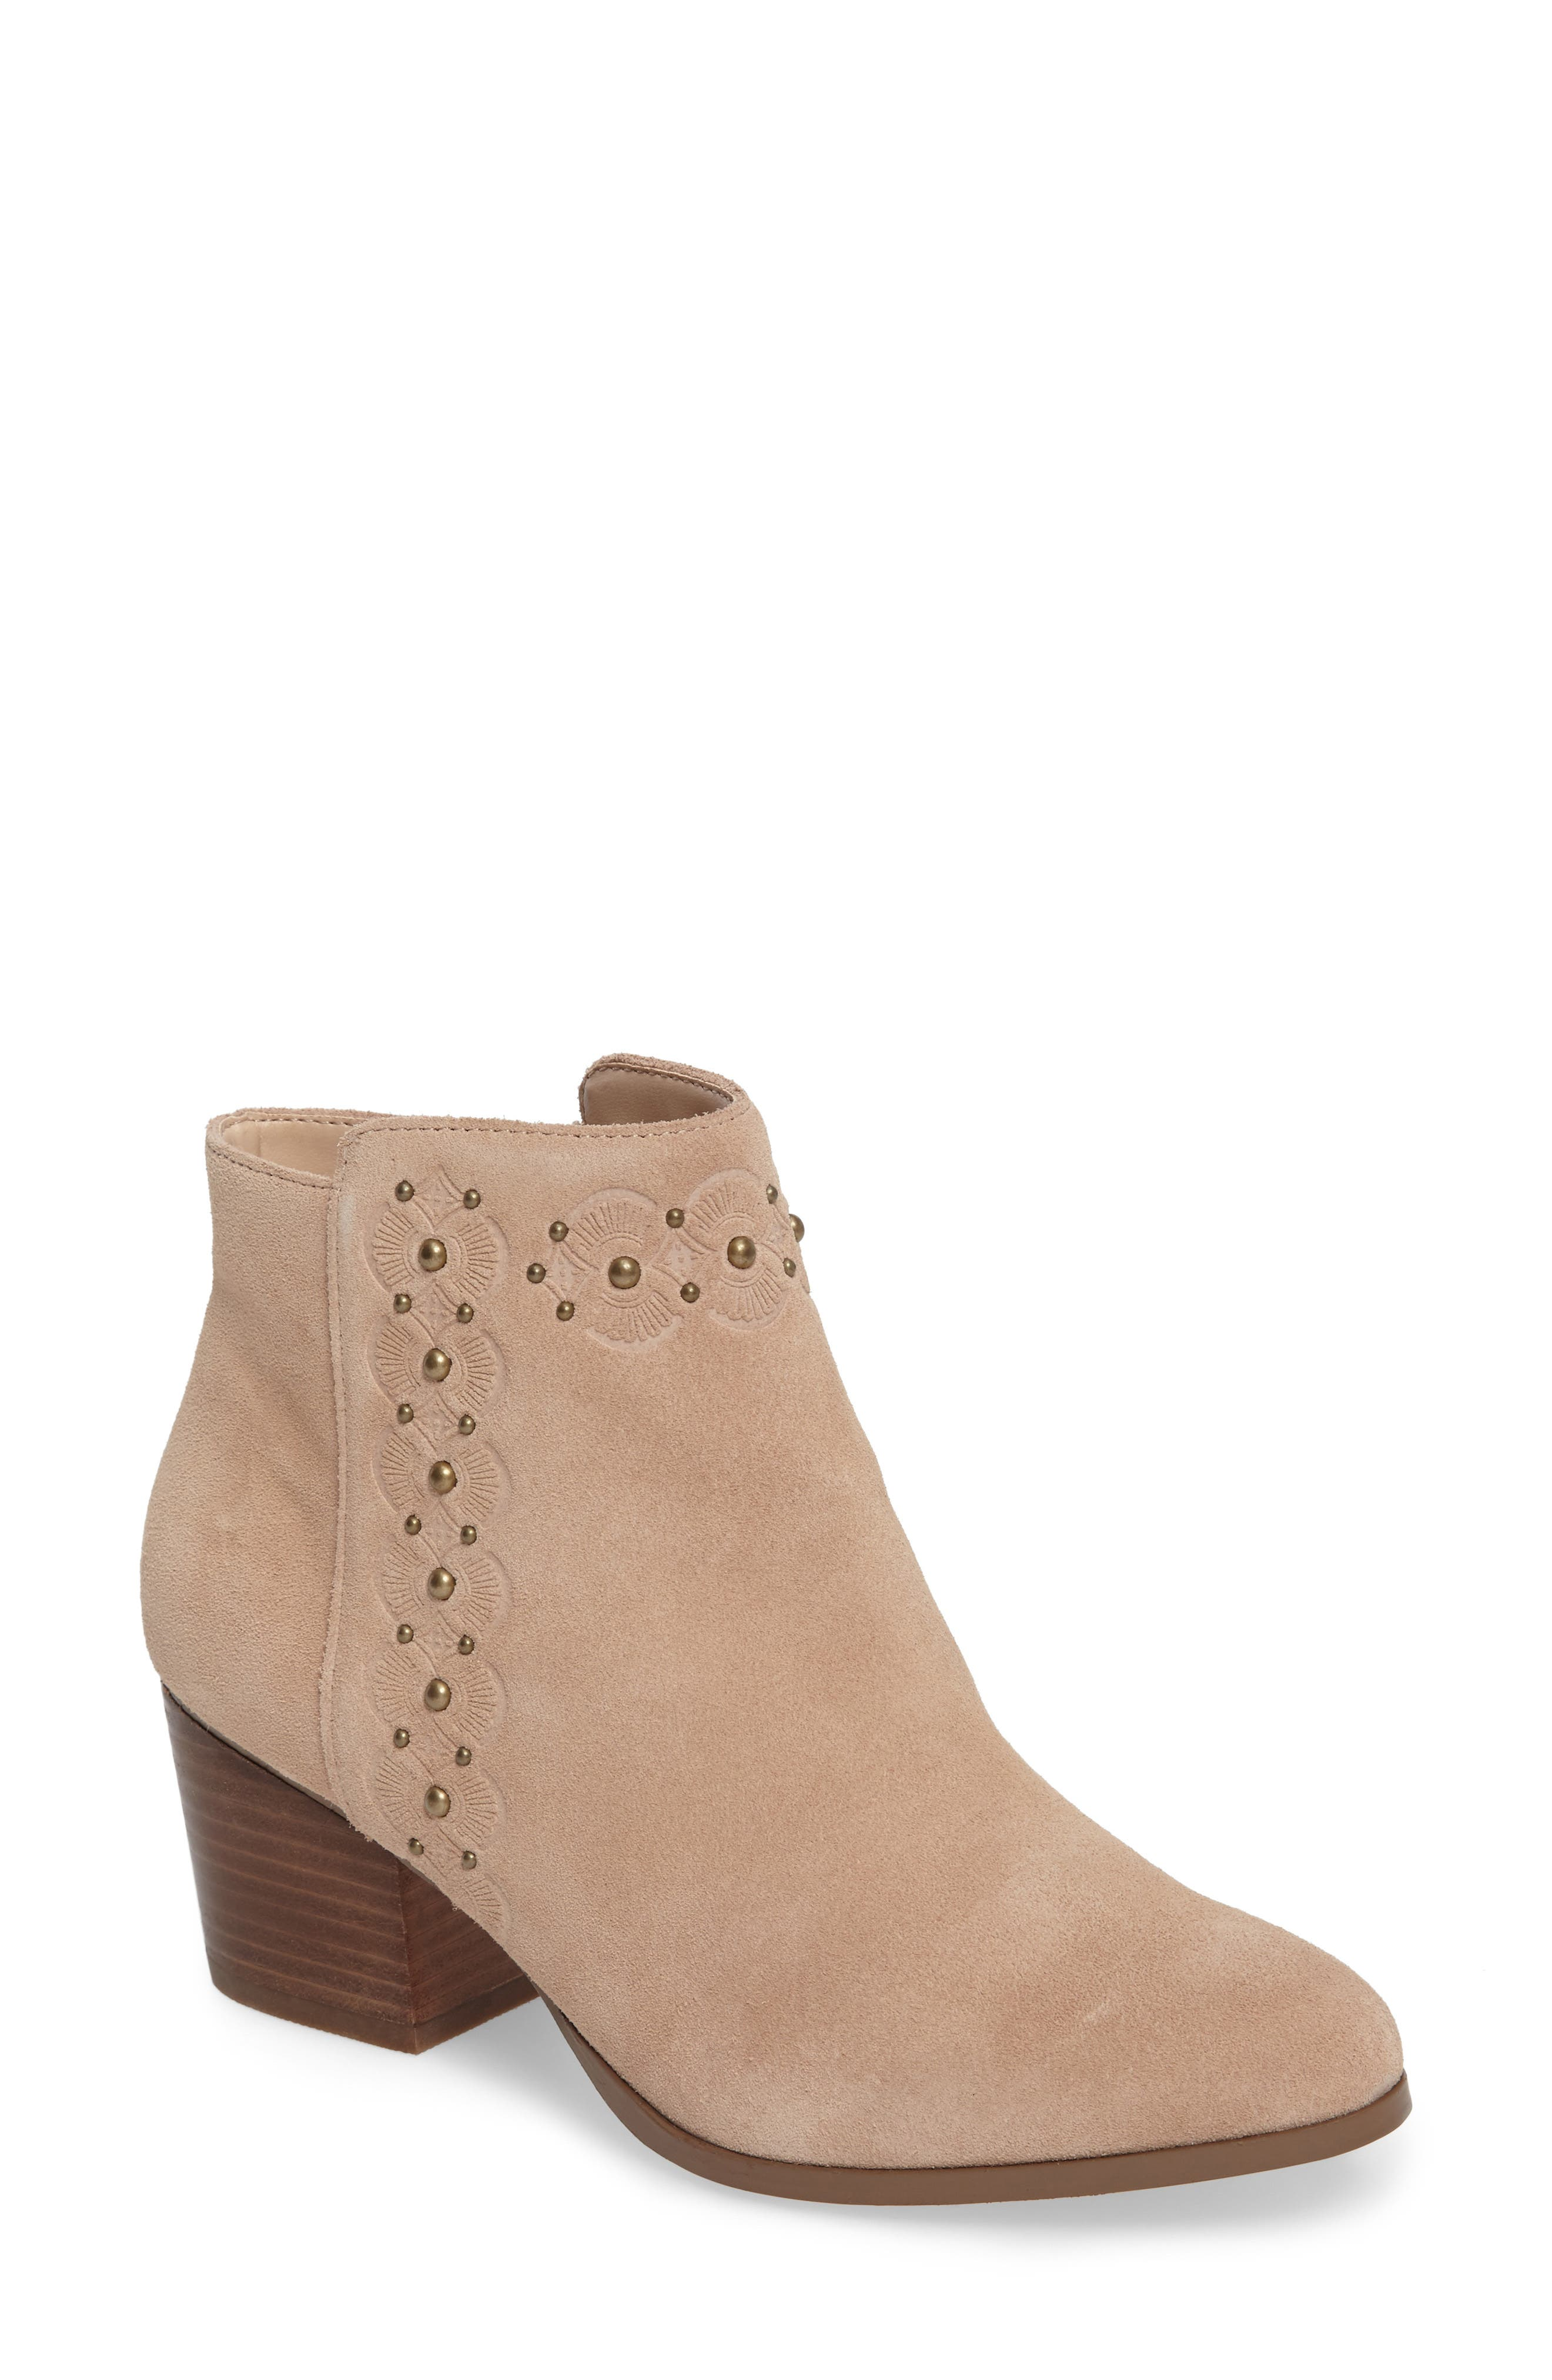 Main Image - Sole Society Gala Studded Embossed Bootie (Women)